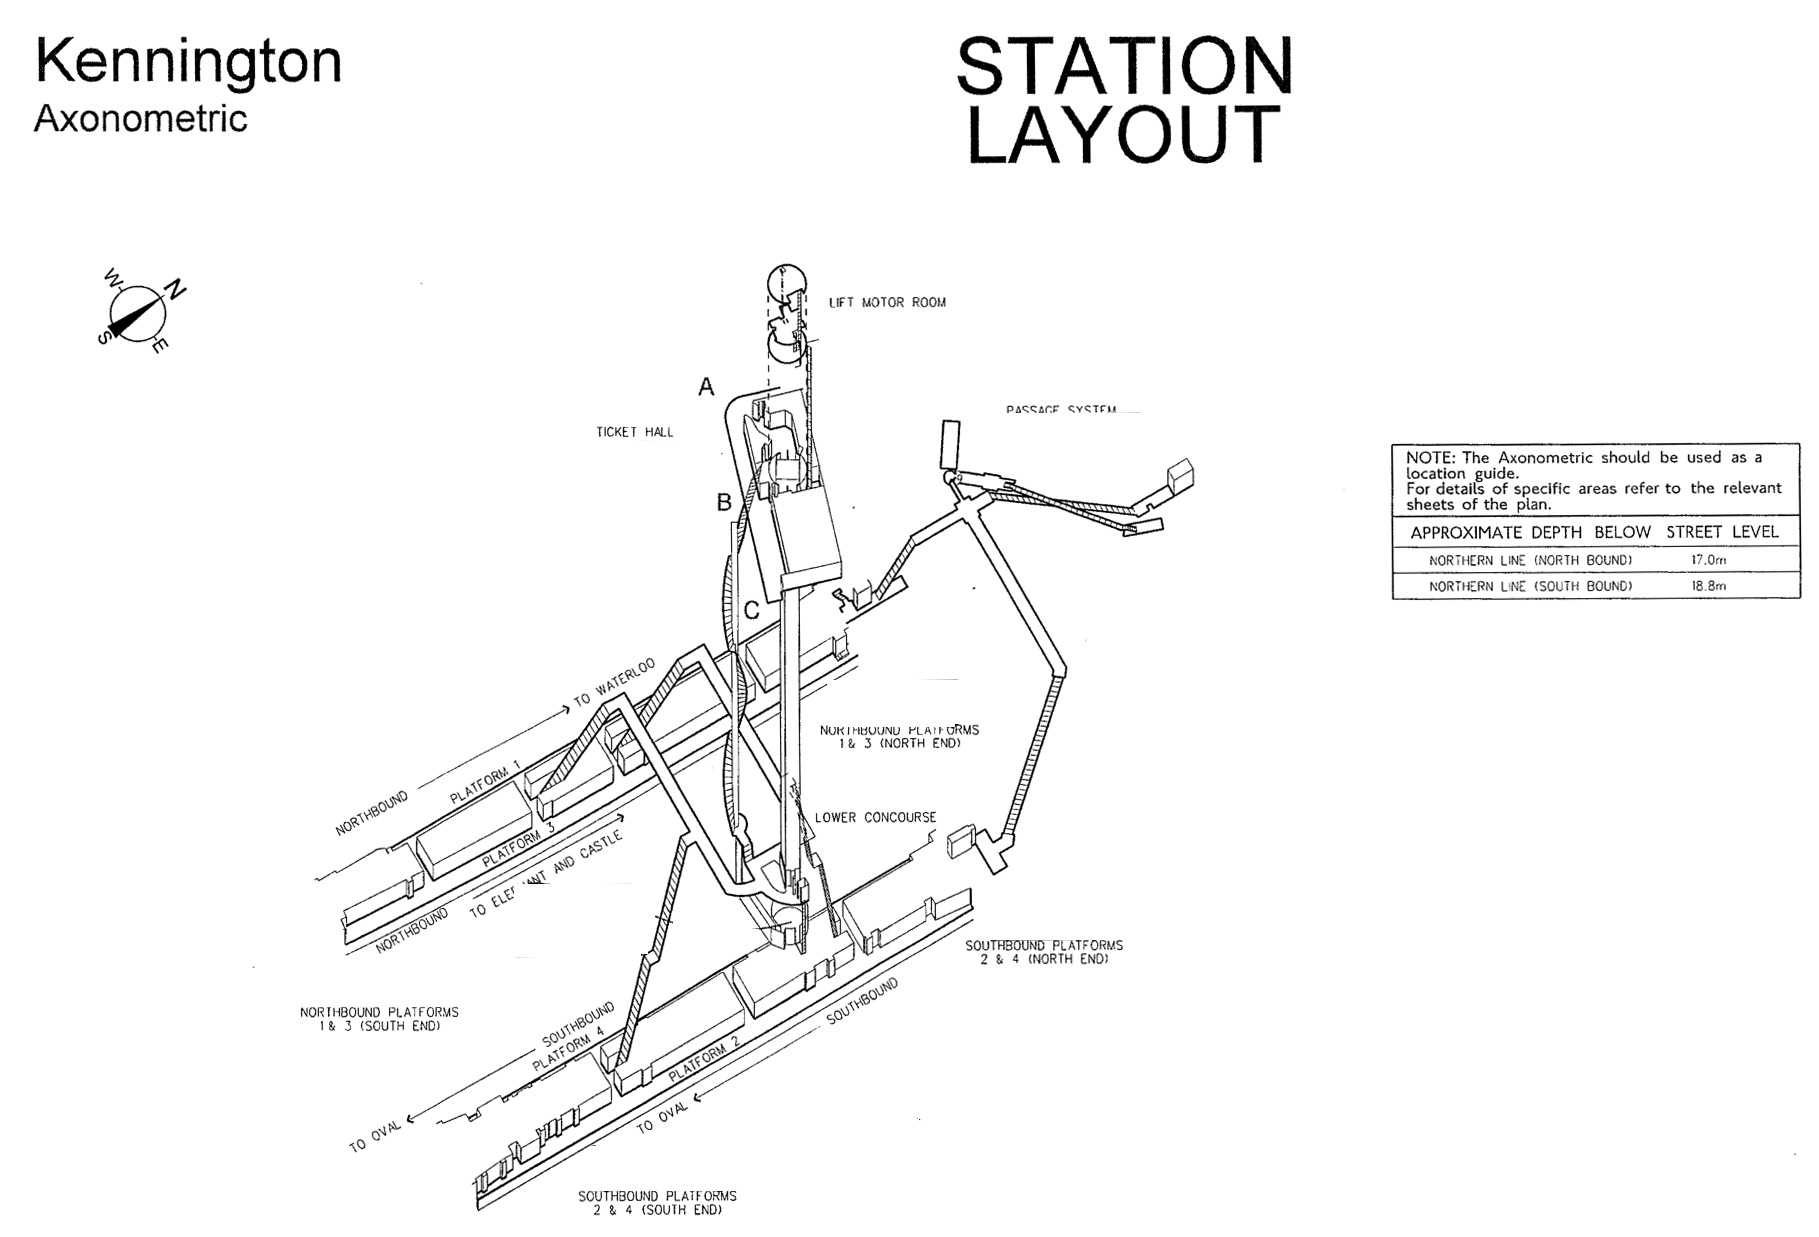 3d maps of london underground stations    boing boing